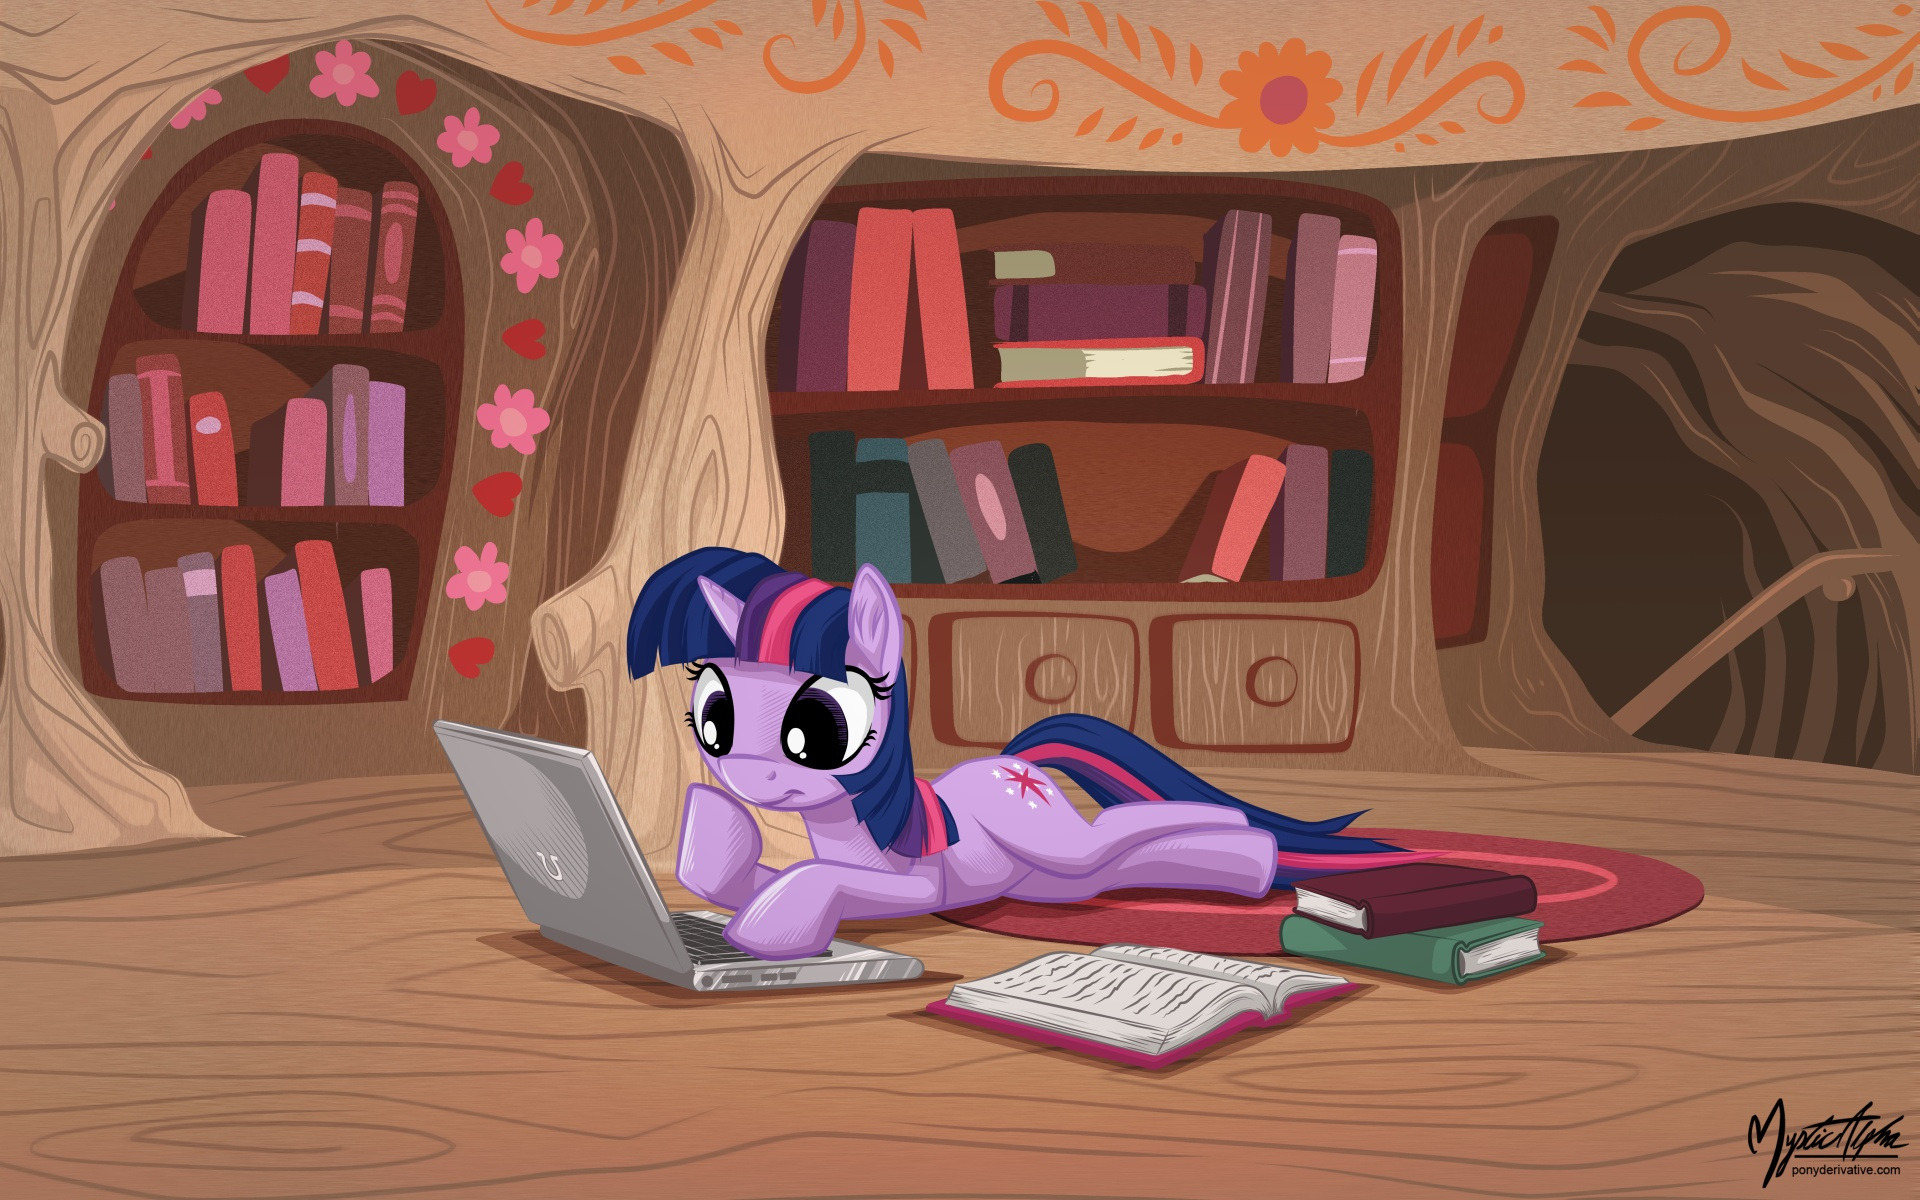 [Obrázek: twilight_sparkle_on_laptop_by_mysticalpha-d5izar0.jpg]